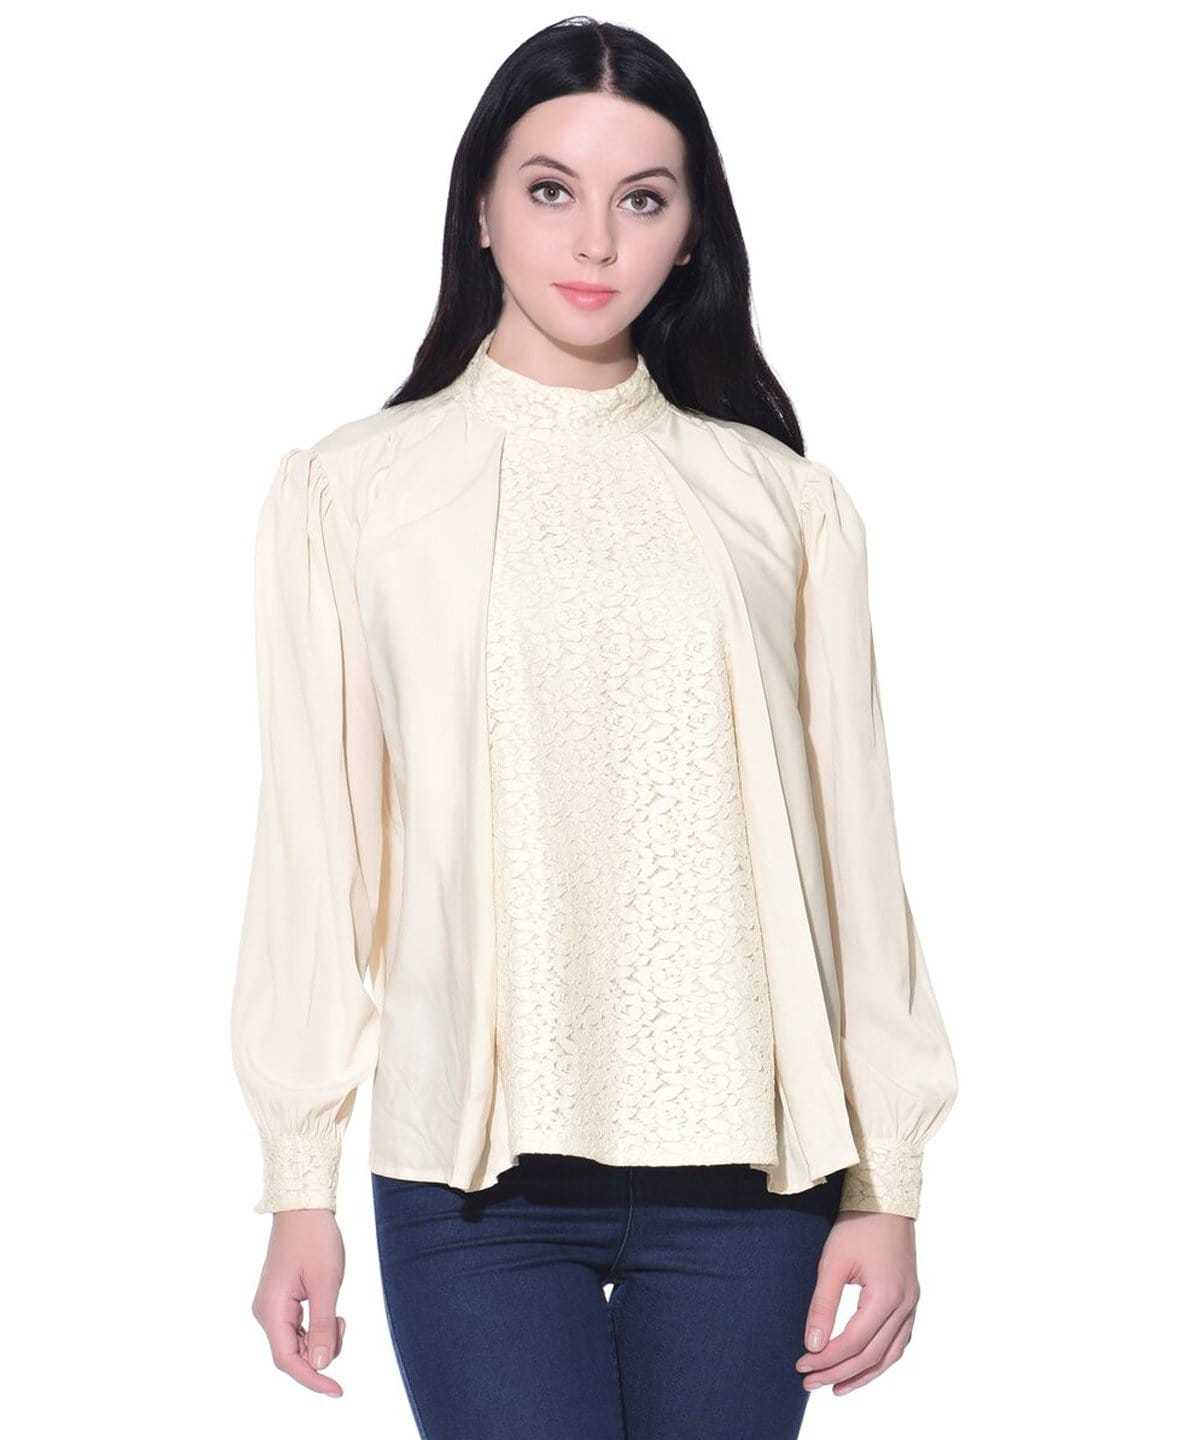 Uptownie Plus Solid White Long Sleeves Casual Crepe Lace Top. FLAT 200 OFF